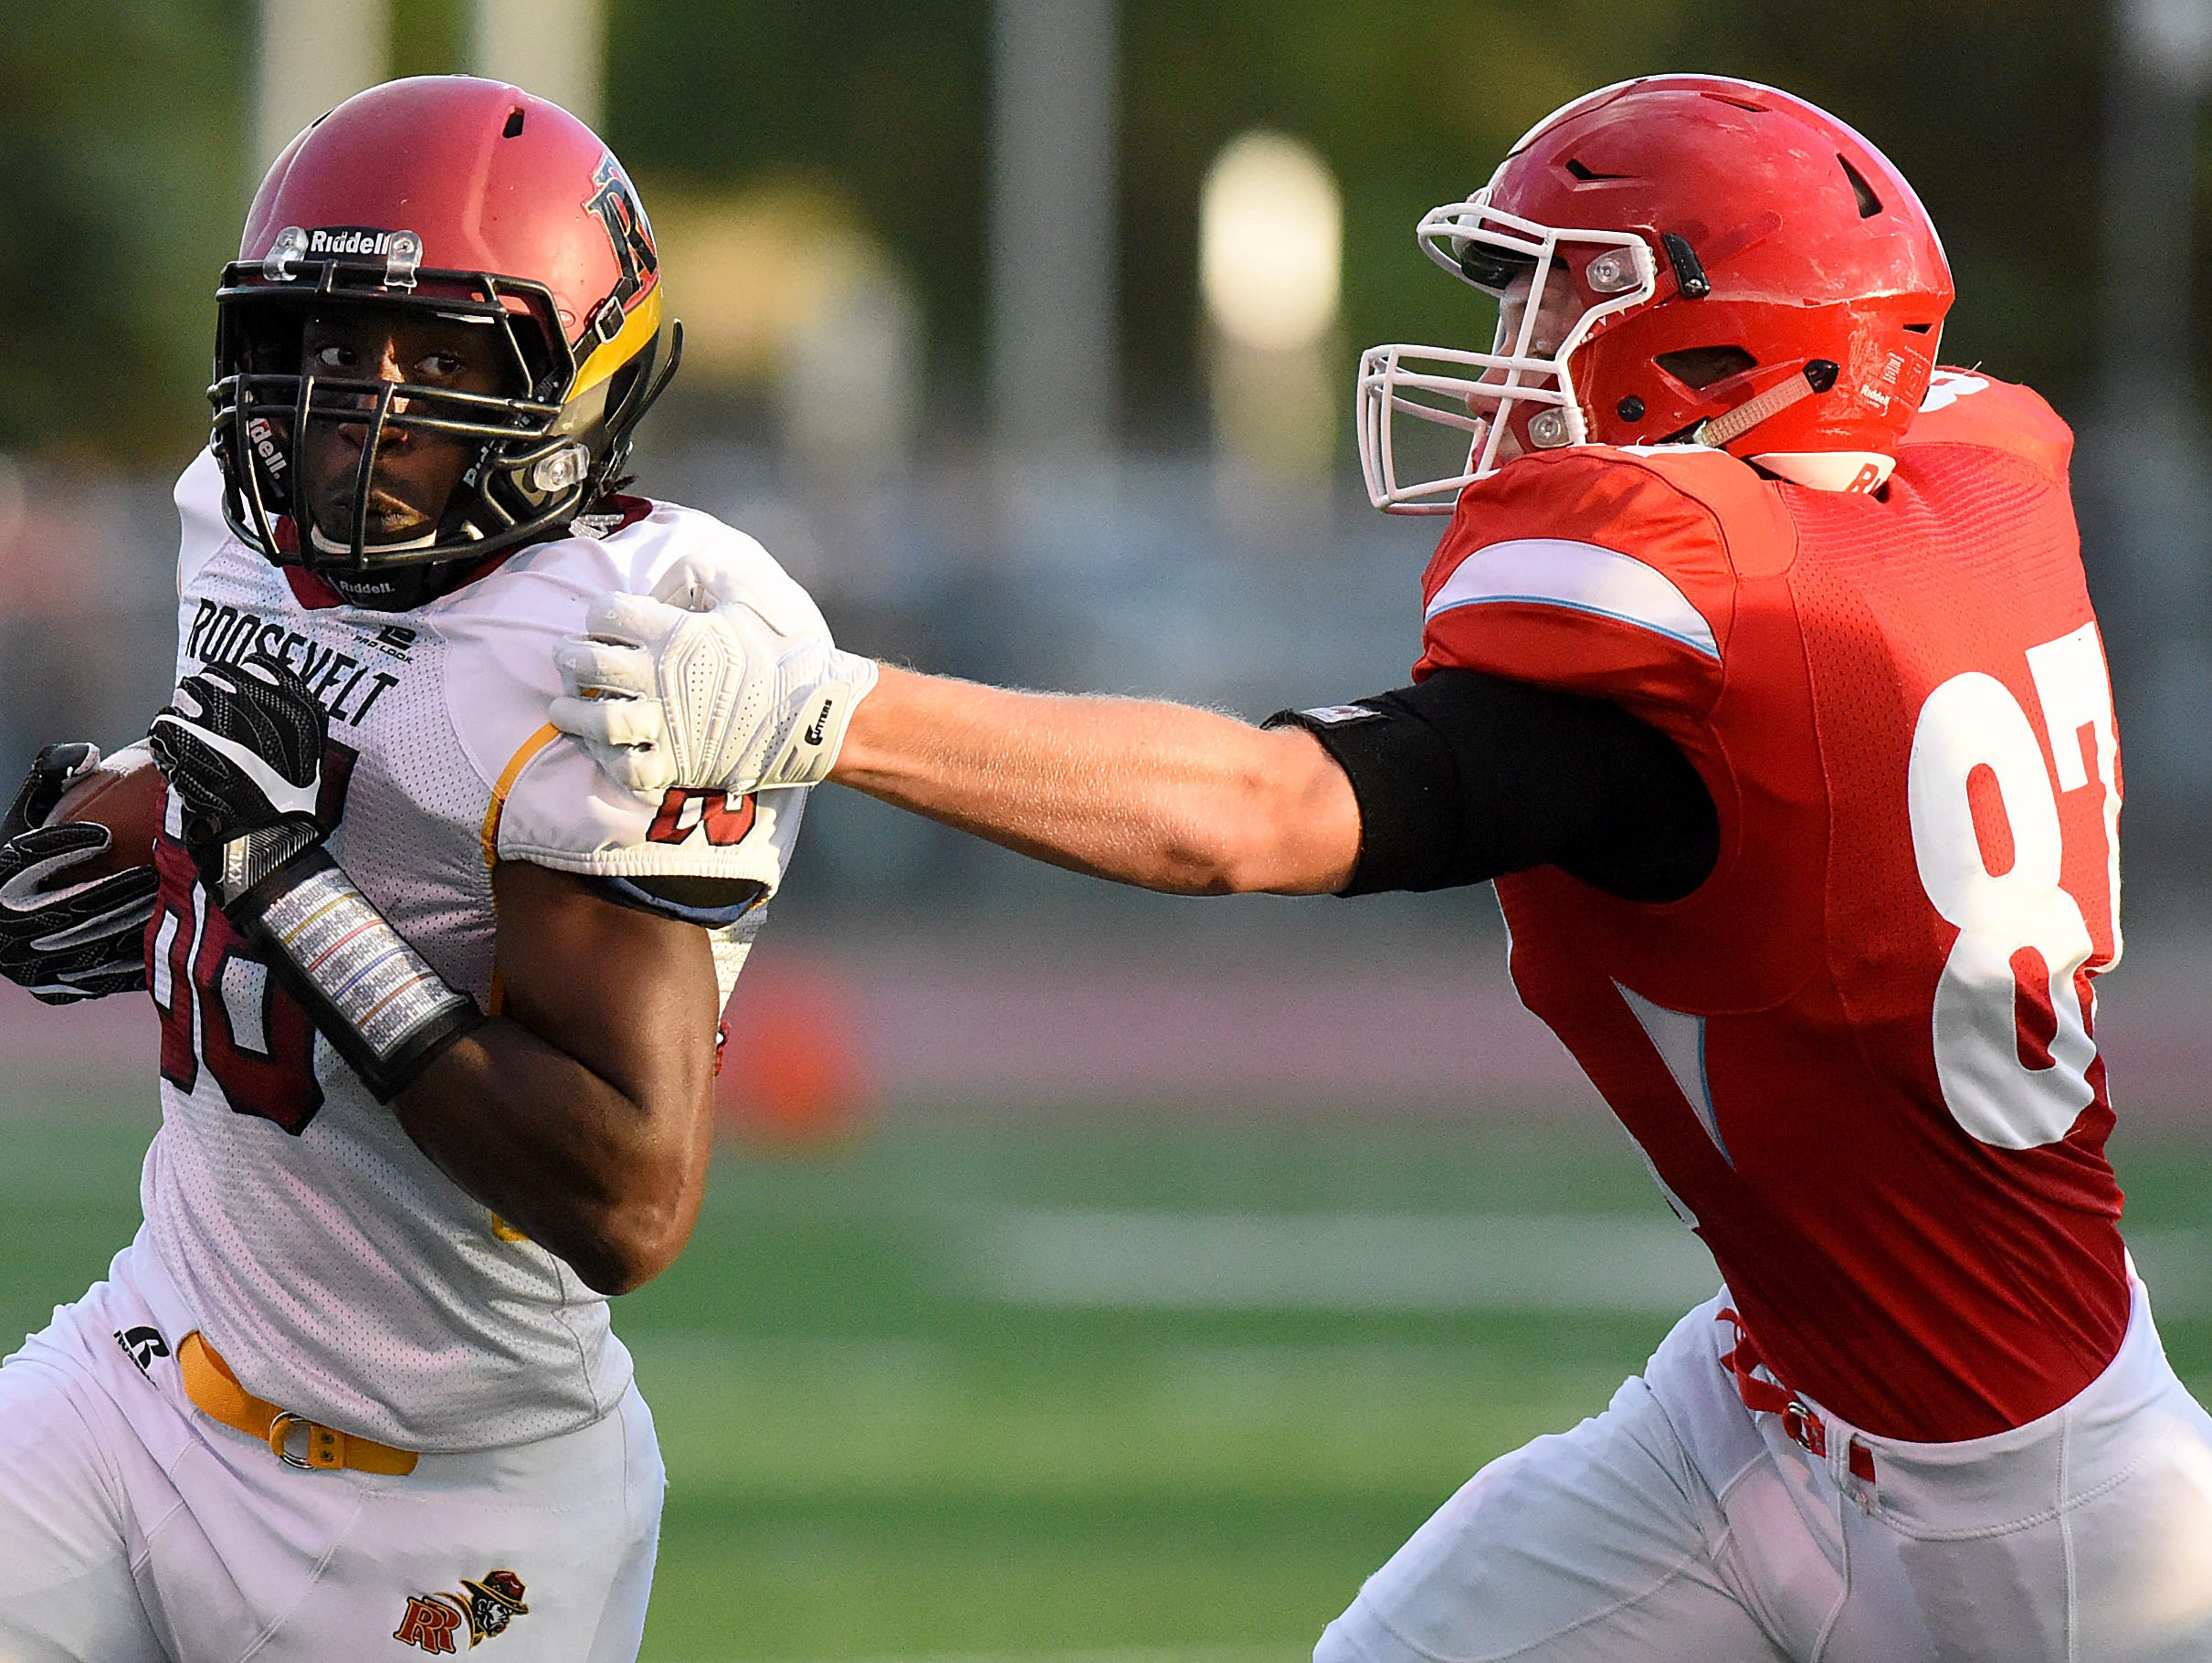 Roosevelt's Demareio Hester carries the ball while trying to get away from Lincoln's Trent Naasz during their game on Friday at Howard Wood Field.